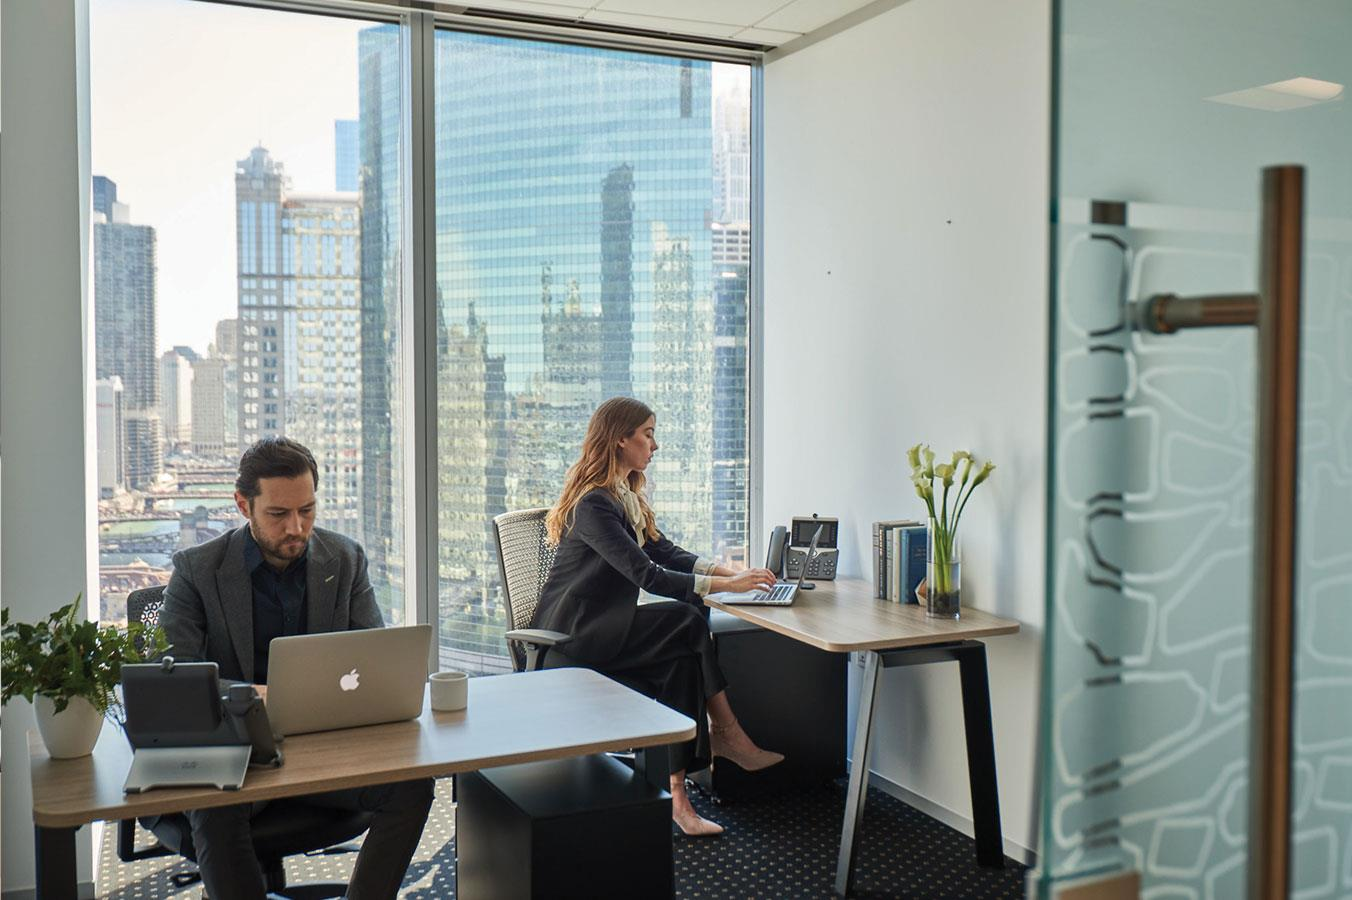 Servcorp - Dallas Rosewood Court - Window Office for 2